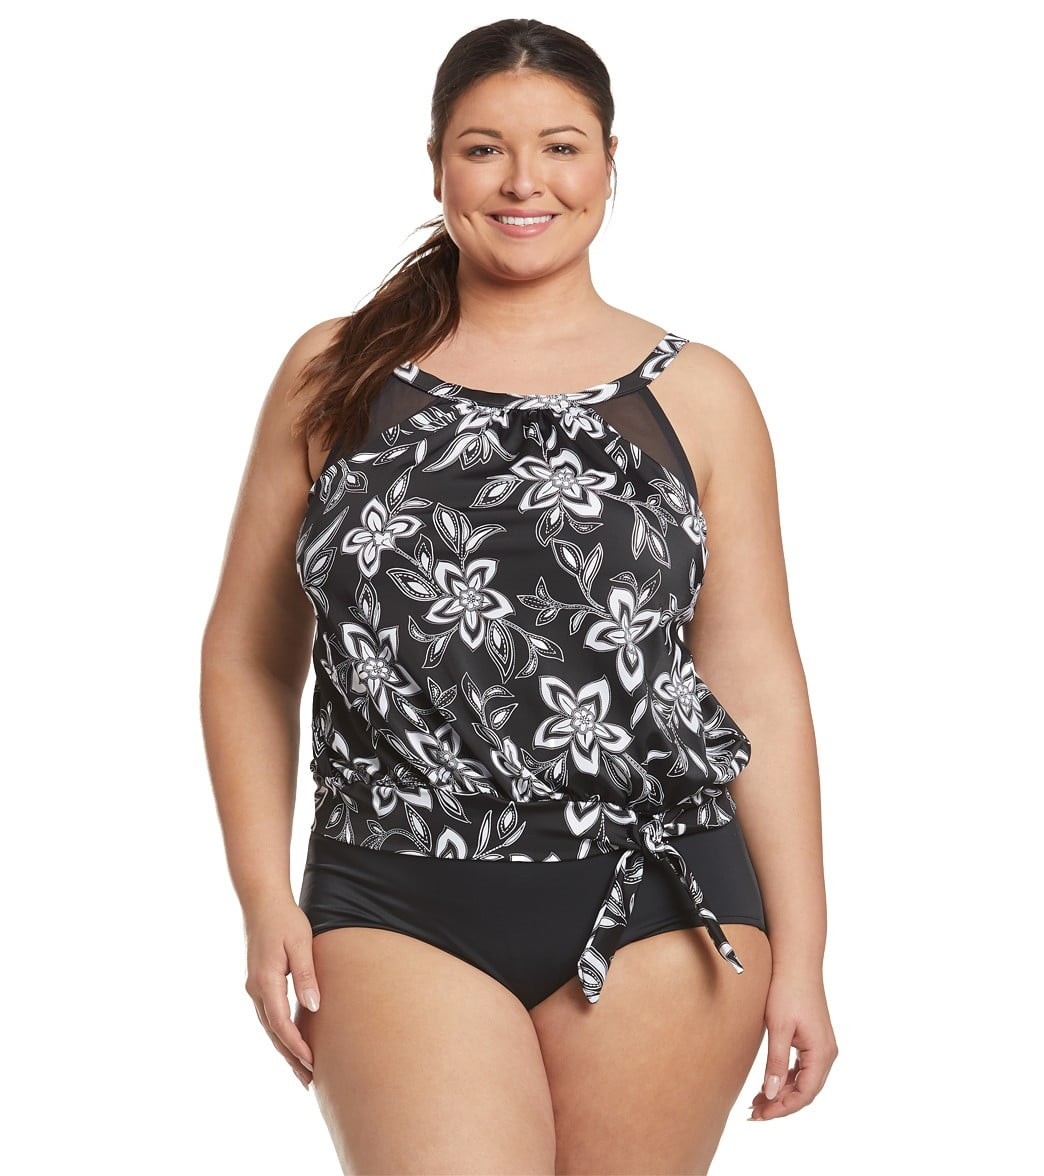 ac769c3b3c Penbrooke Plus Size Magnolia and Twin High Neck Mesh Blouson Tankini Top at  SwimOutlet.com - Free Shipping